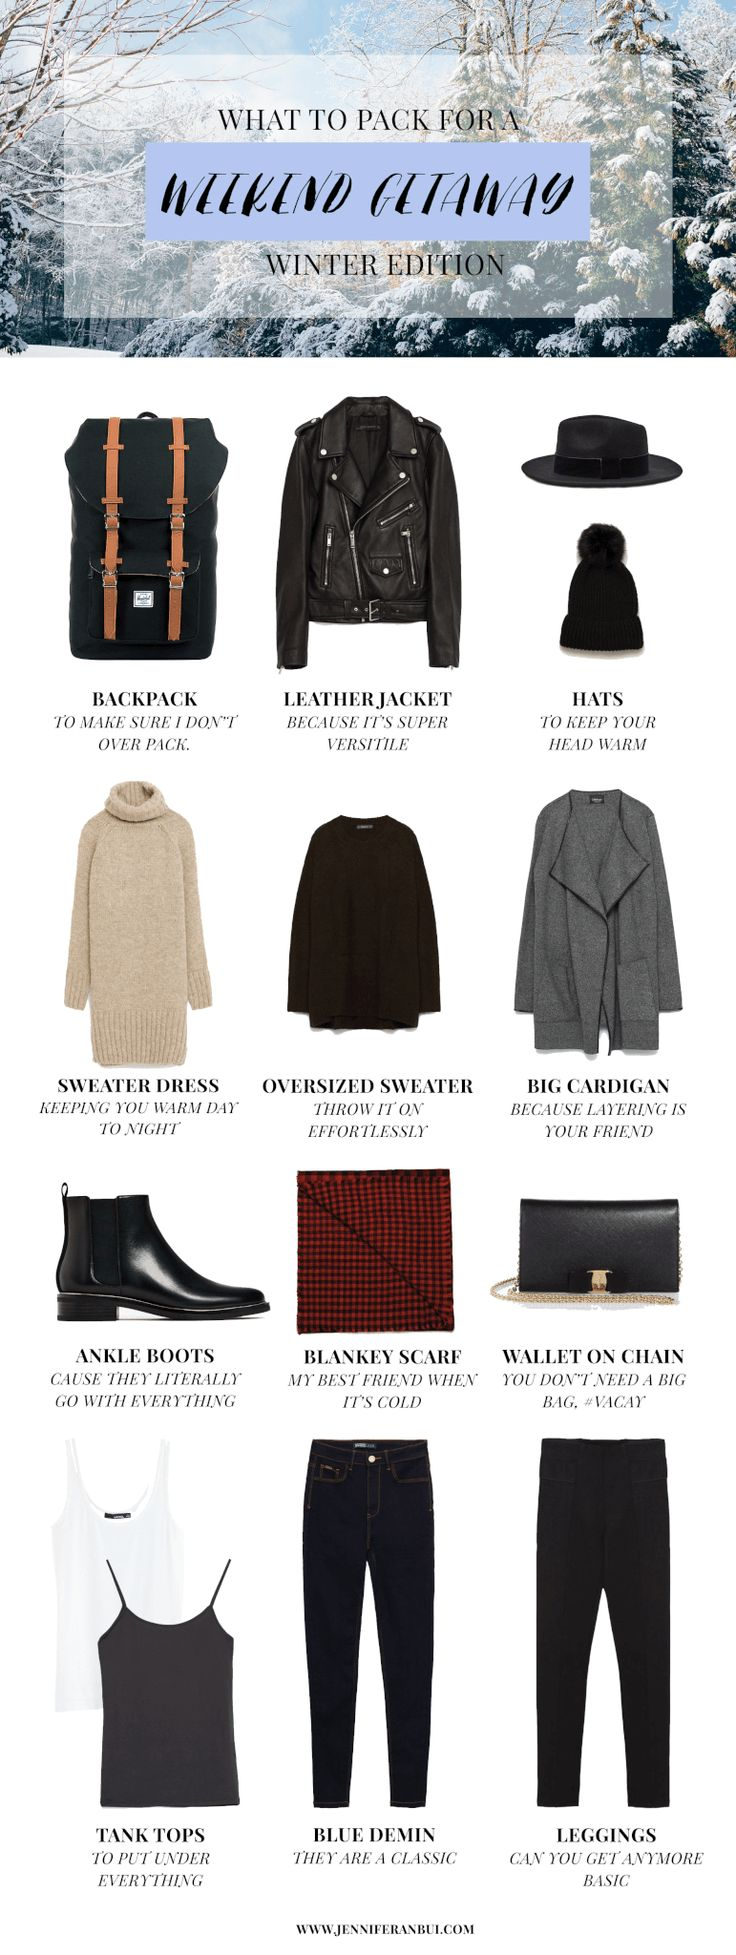 What to pack for a winter weekend getaway guide  What to pack packing guide what to wear for a winter weekend getaway winter vacation packing